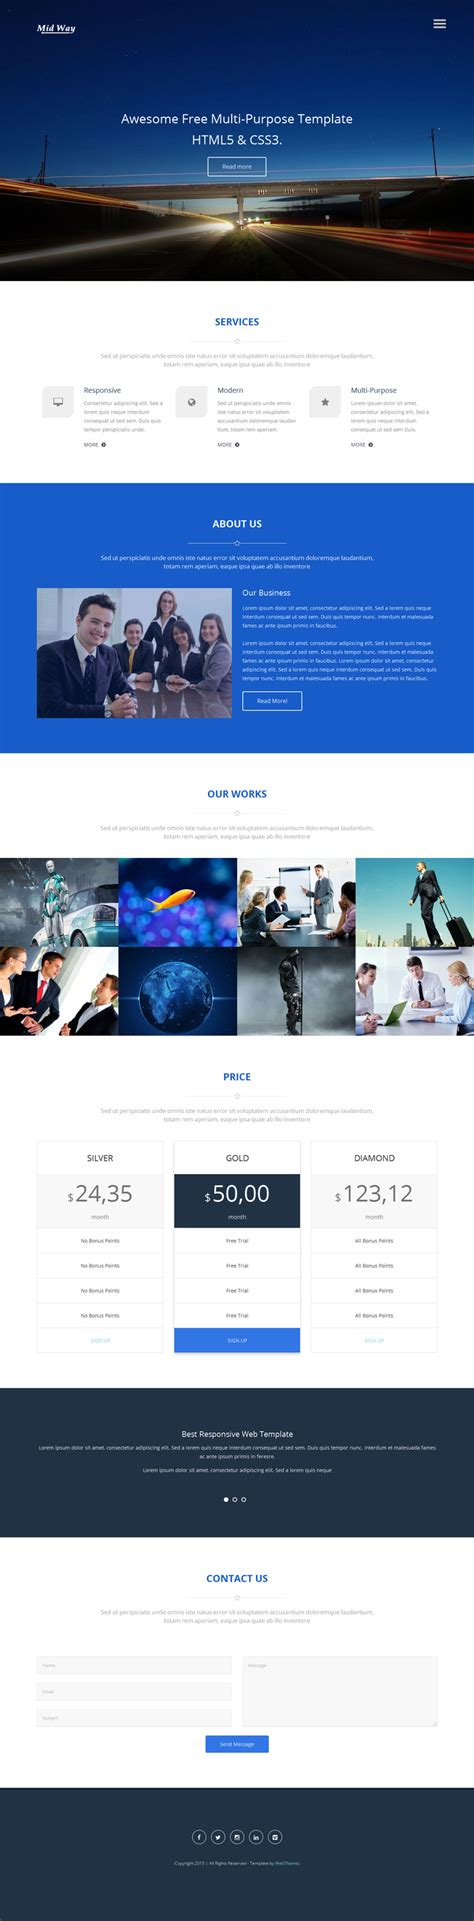 10 Best Free Website Html5 Templates February 2015 Website Templates Html5